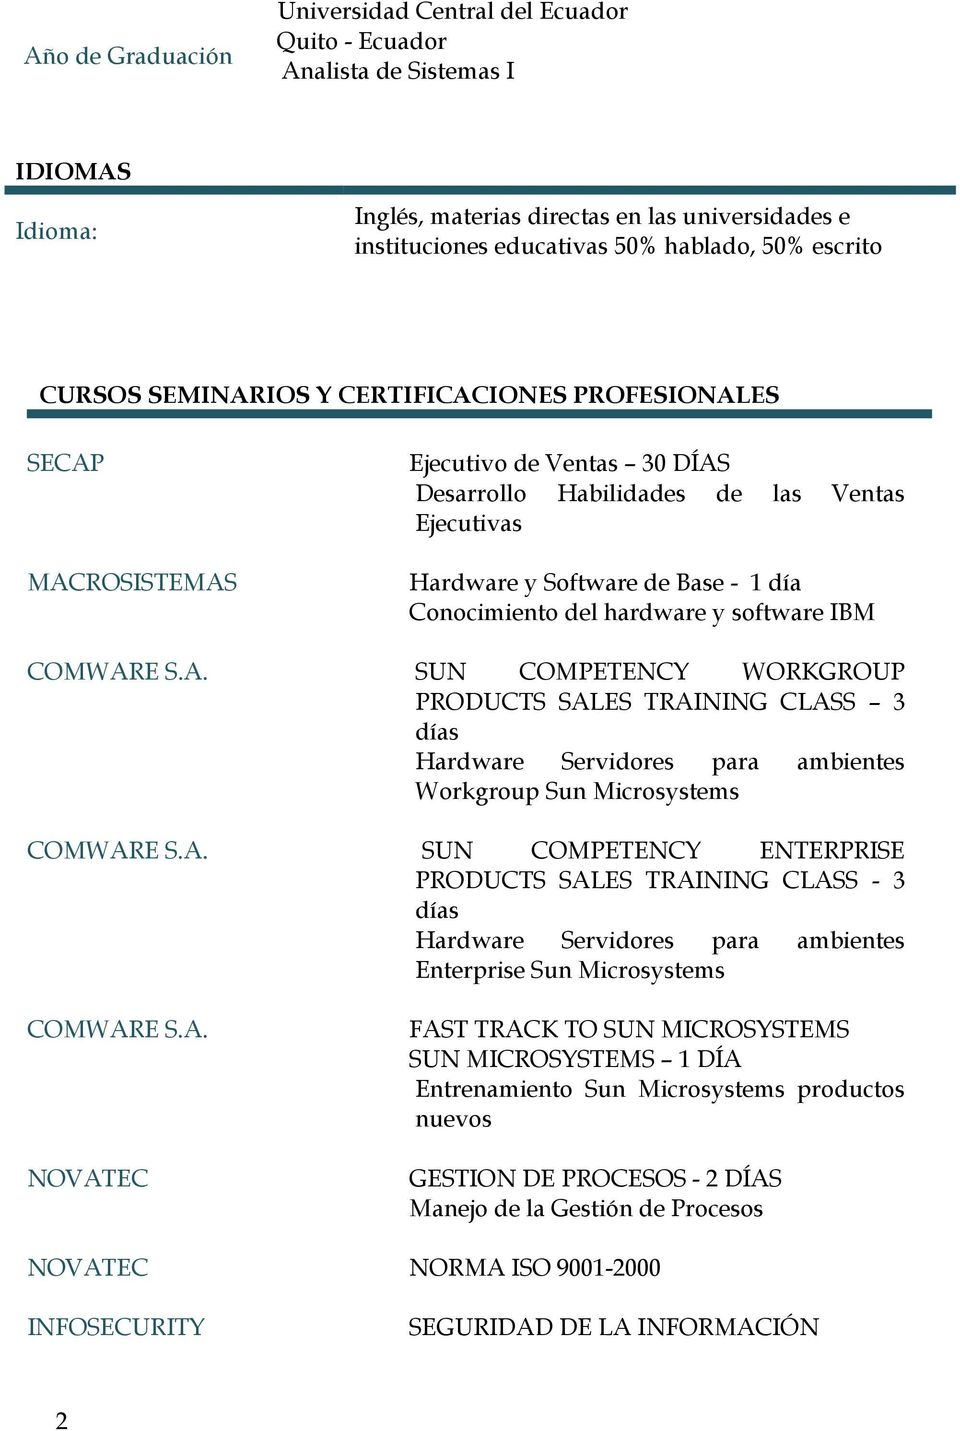 Conocimiento del hardware y software IBM COMWARE S.A. SUN COMPETENCY WORKGROUP PRODUCTS SALES TRAINING CLASS 3 días Hardware Servidores para ambientes Workgroup Sun Microsystems COMWARE S.A. SUN COMPETENCY ENTERPRISE PRODUCTS SALES TRAINING CLASS - 3 días Hardware Servidores para ambientes Enterprise Sun Microsystems COMWARE S.